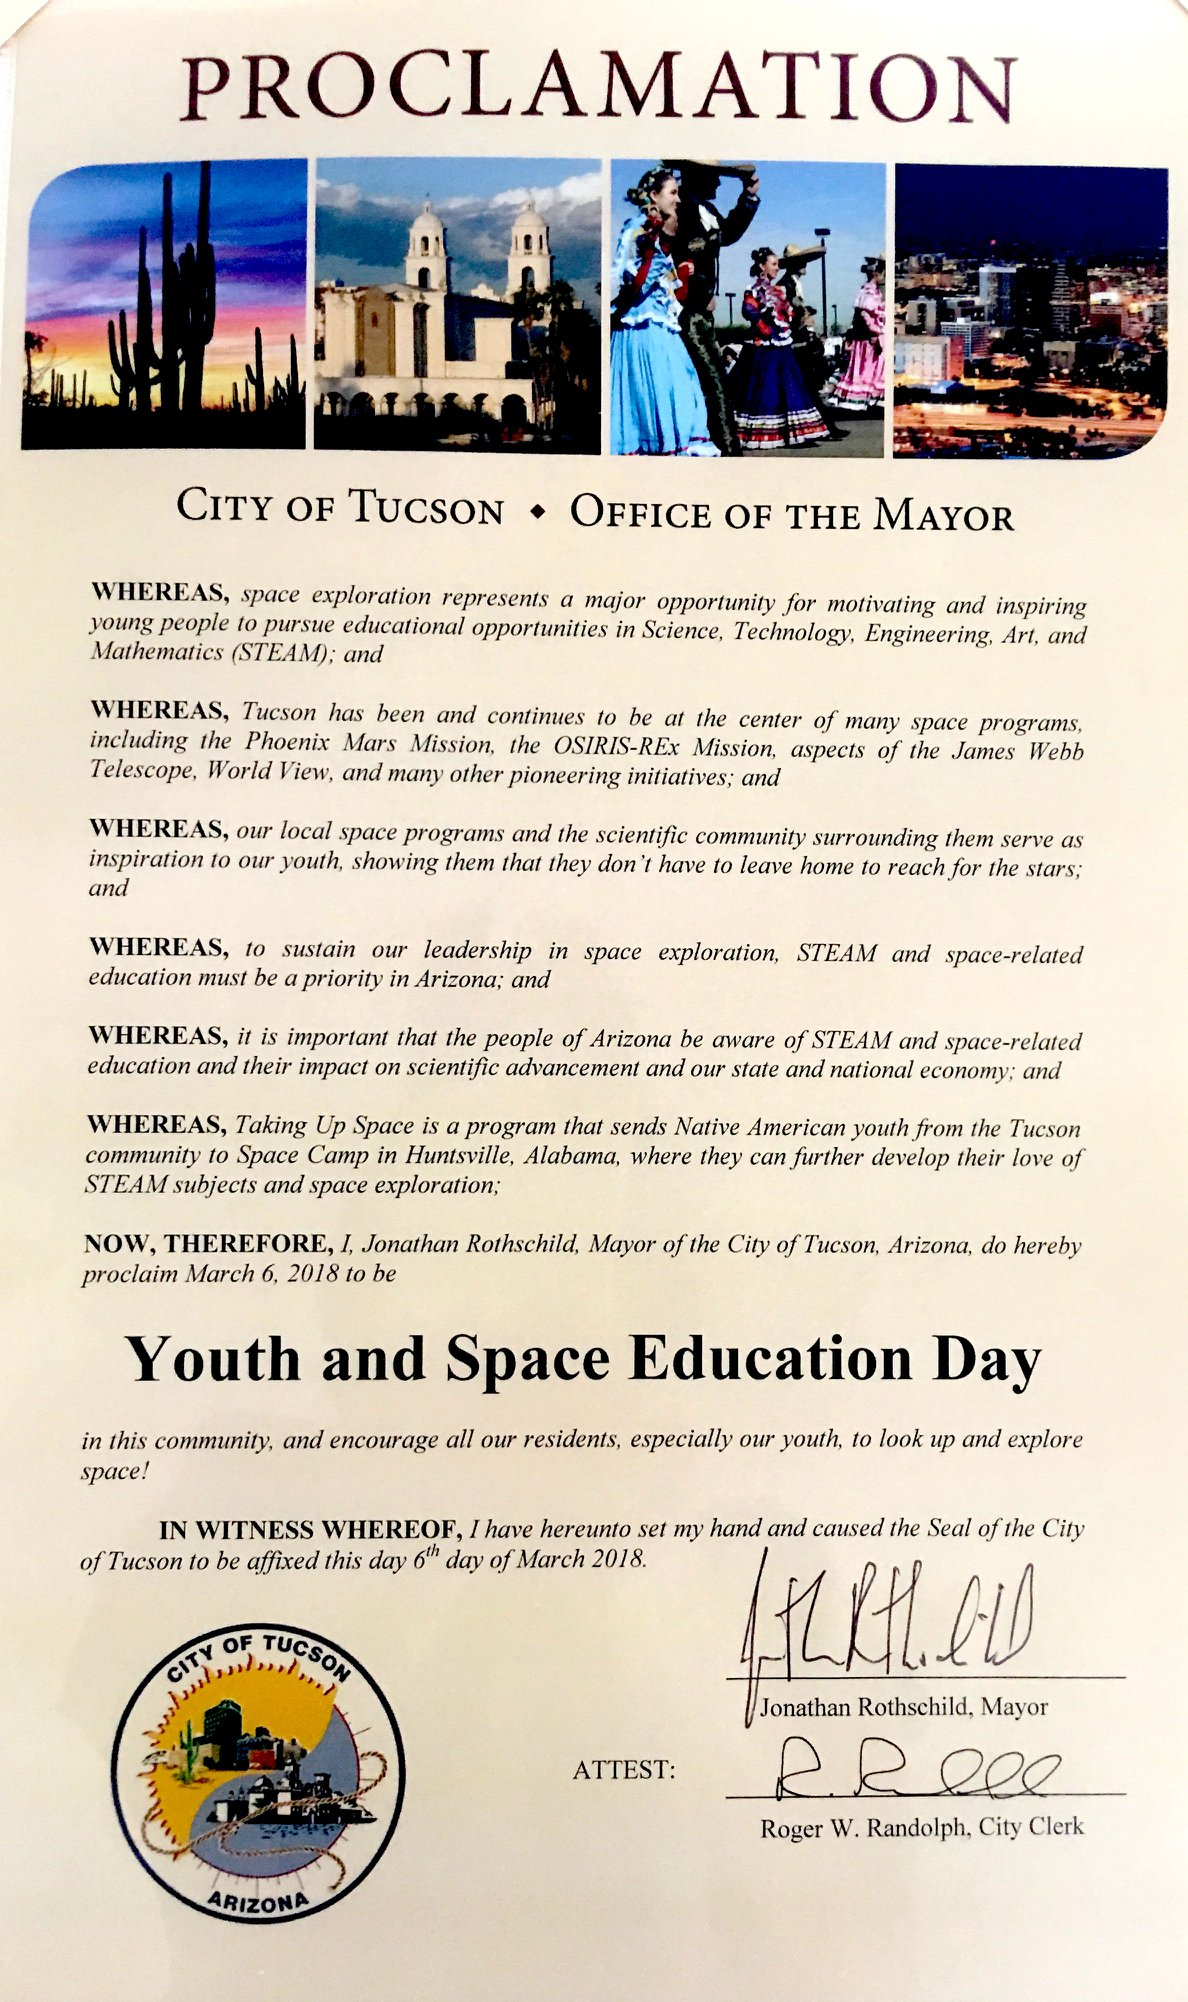 Mayor's Proclamation